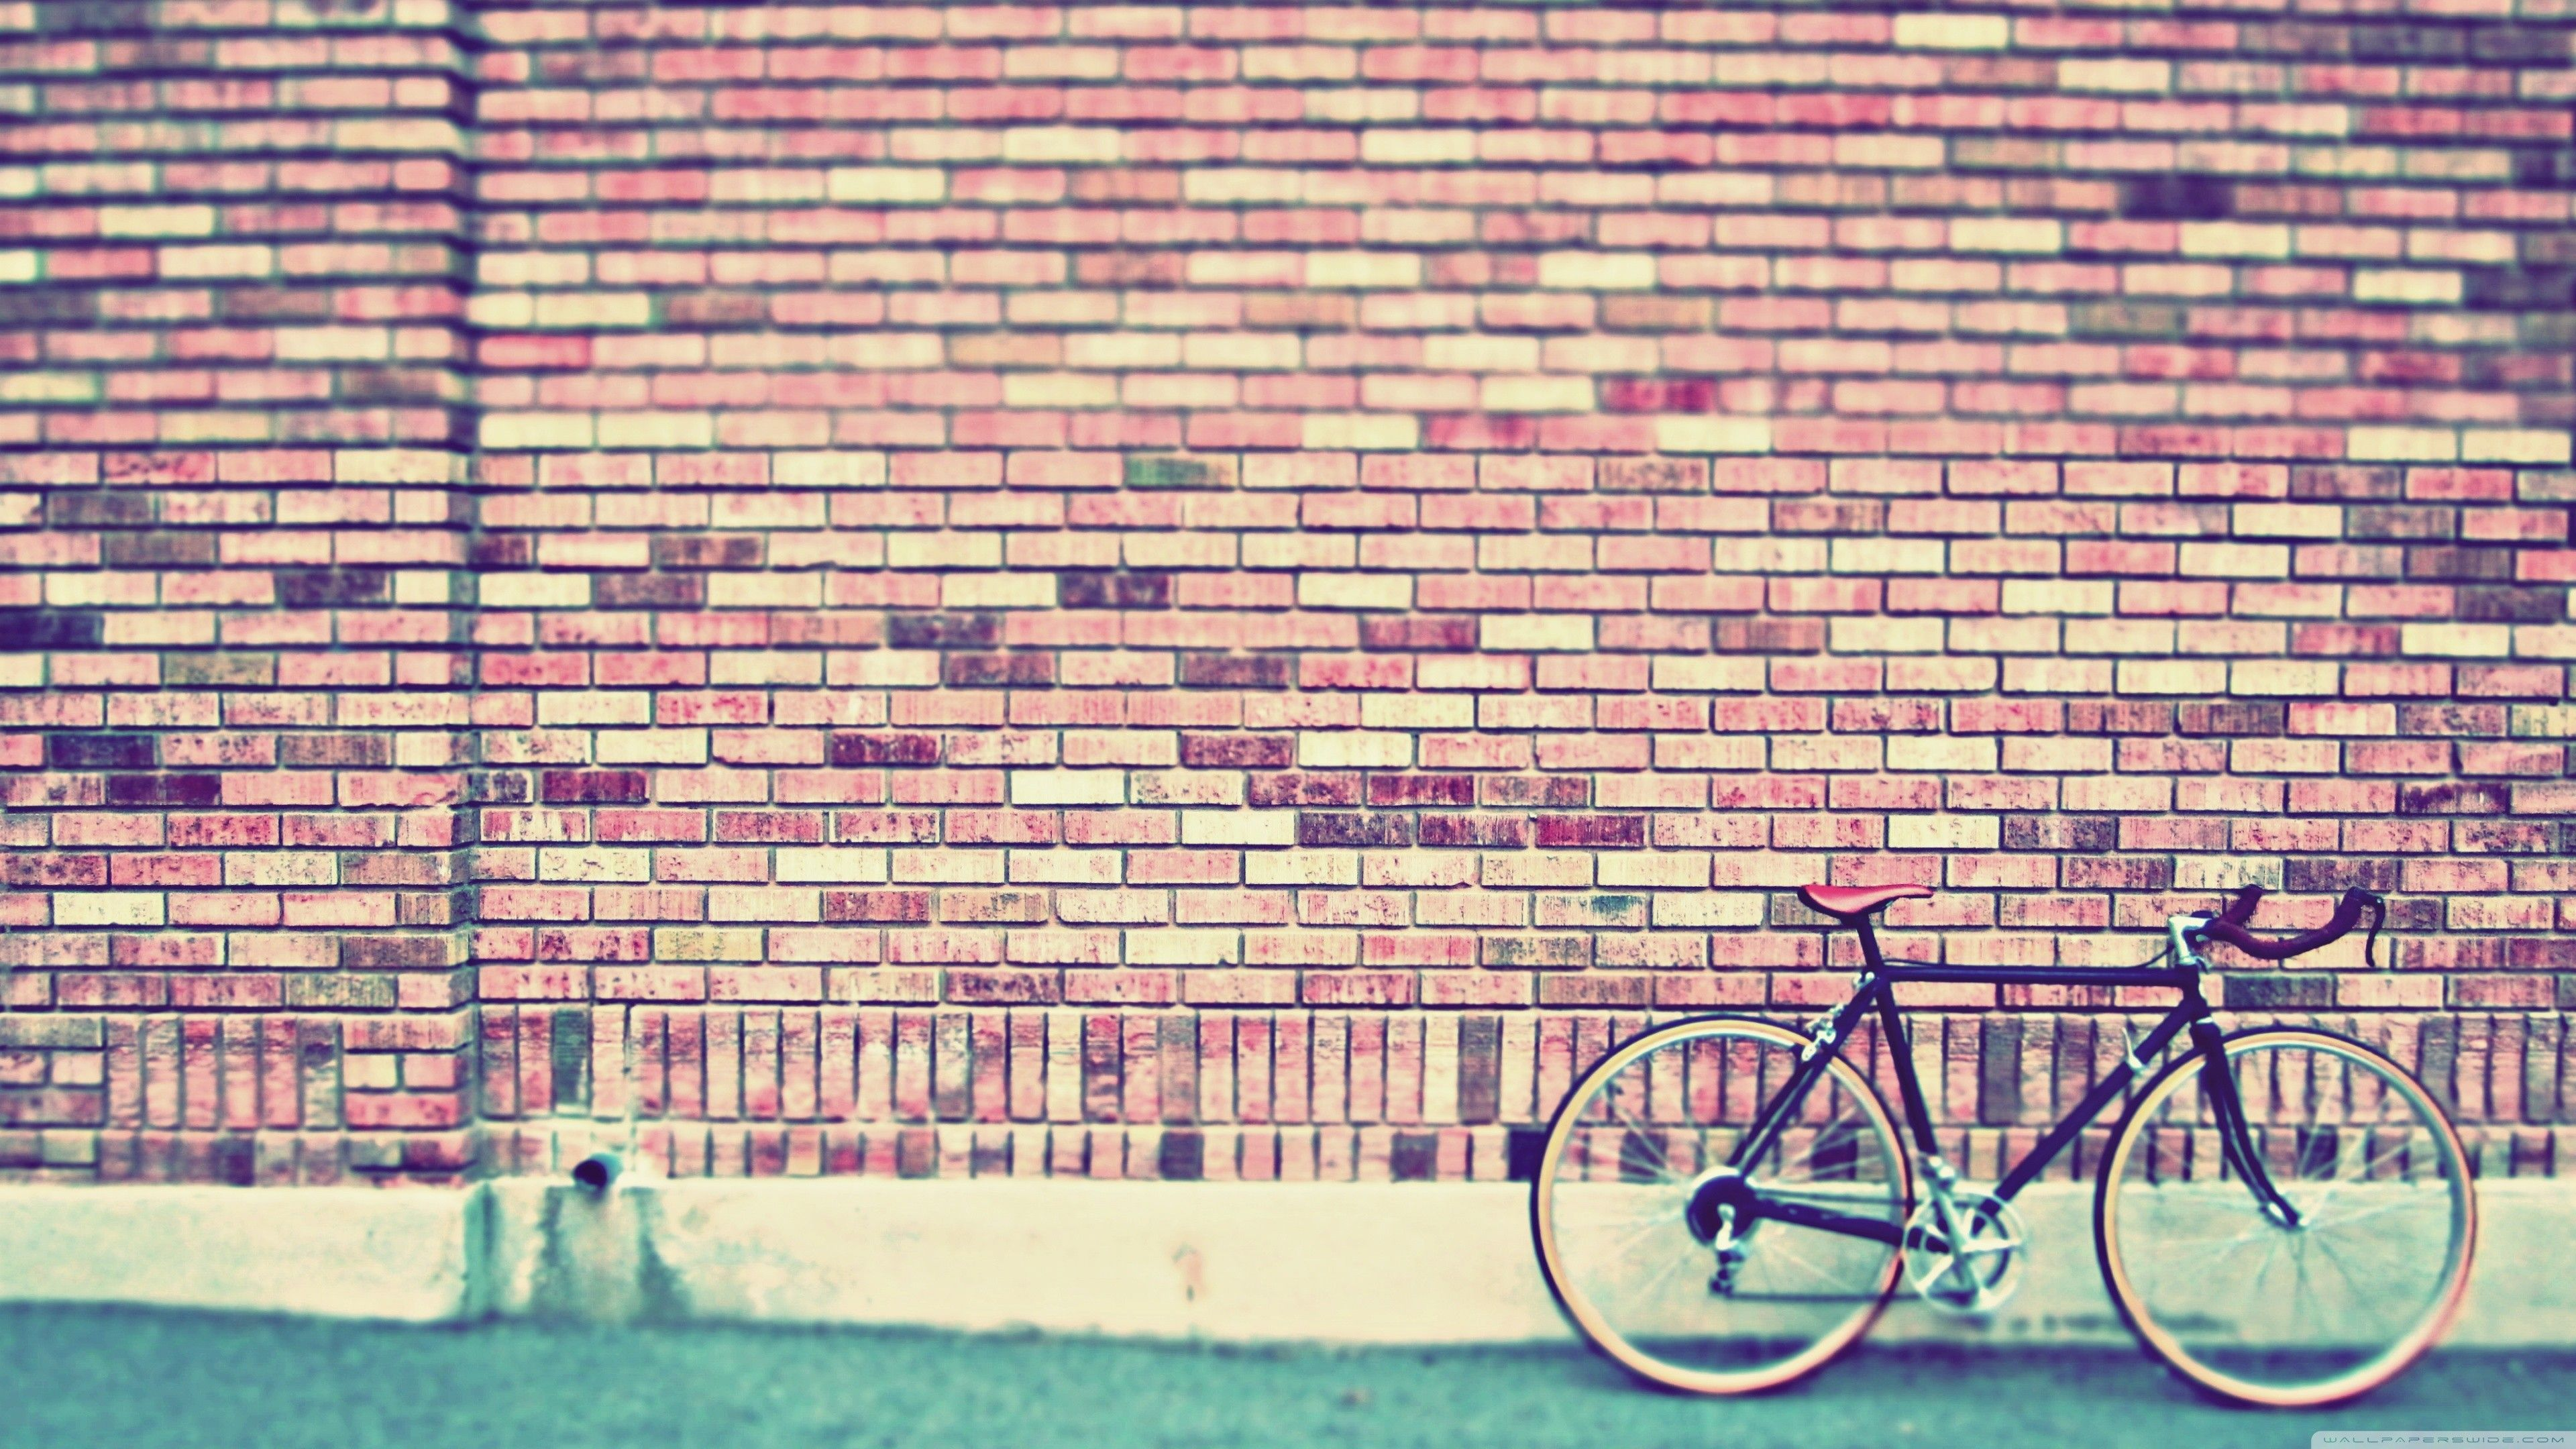 Hipster Iphone Wallpaper Tumblr: Hipster Wallpaper, Wallpaper And Hd Wallpaper